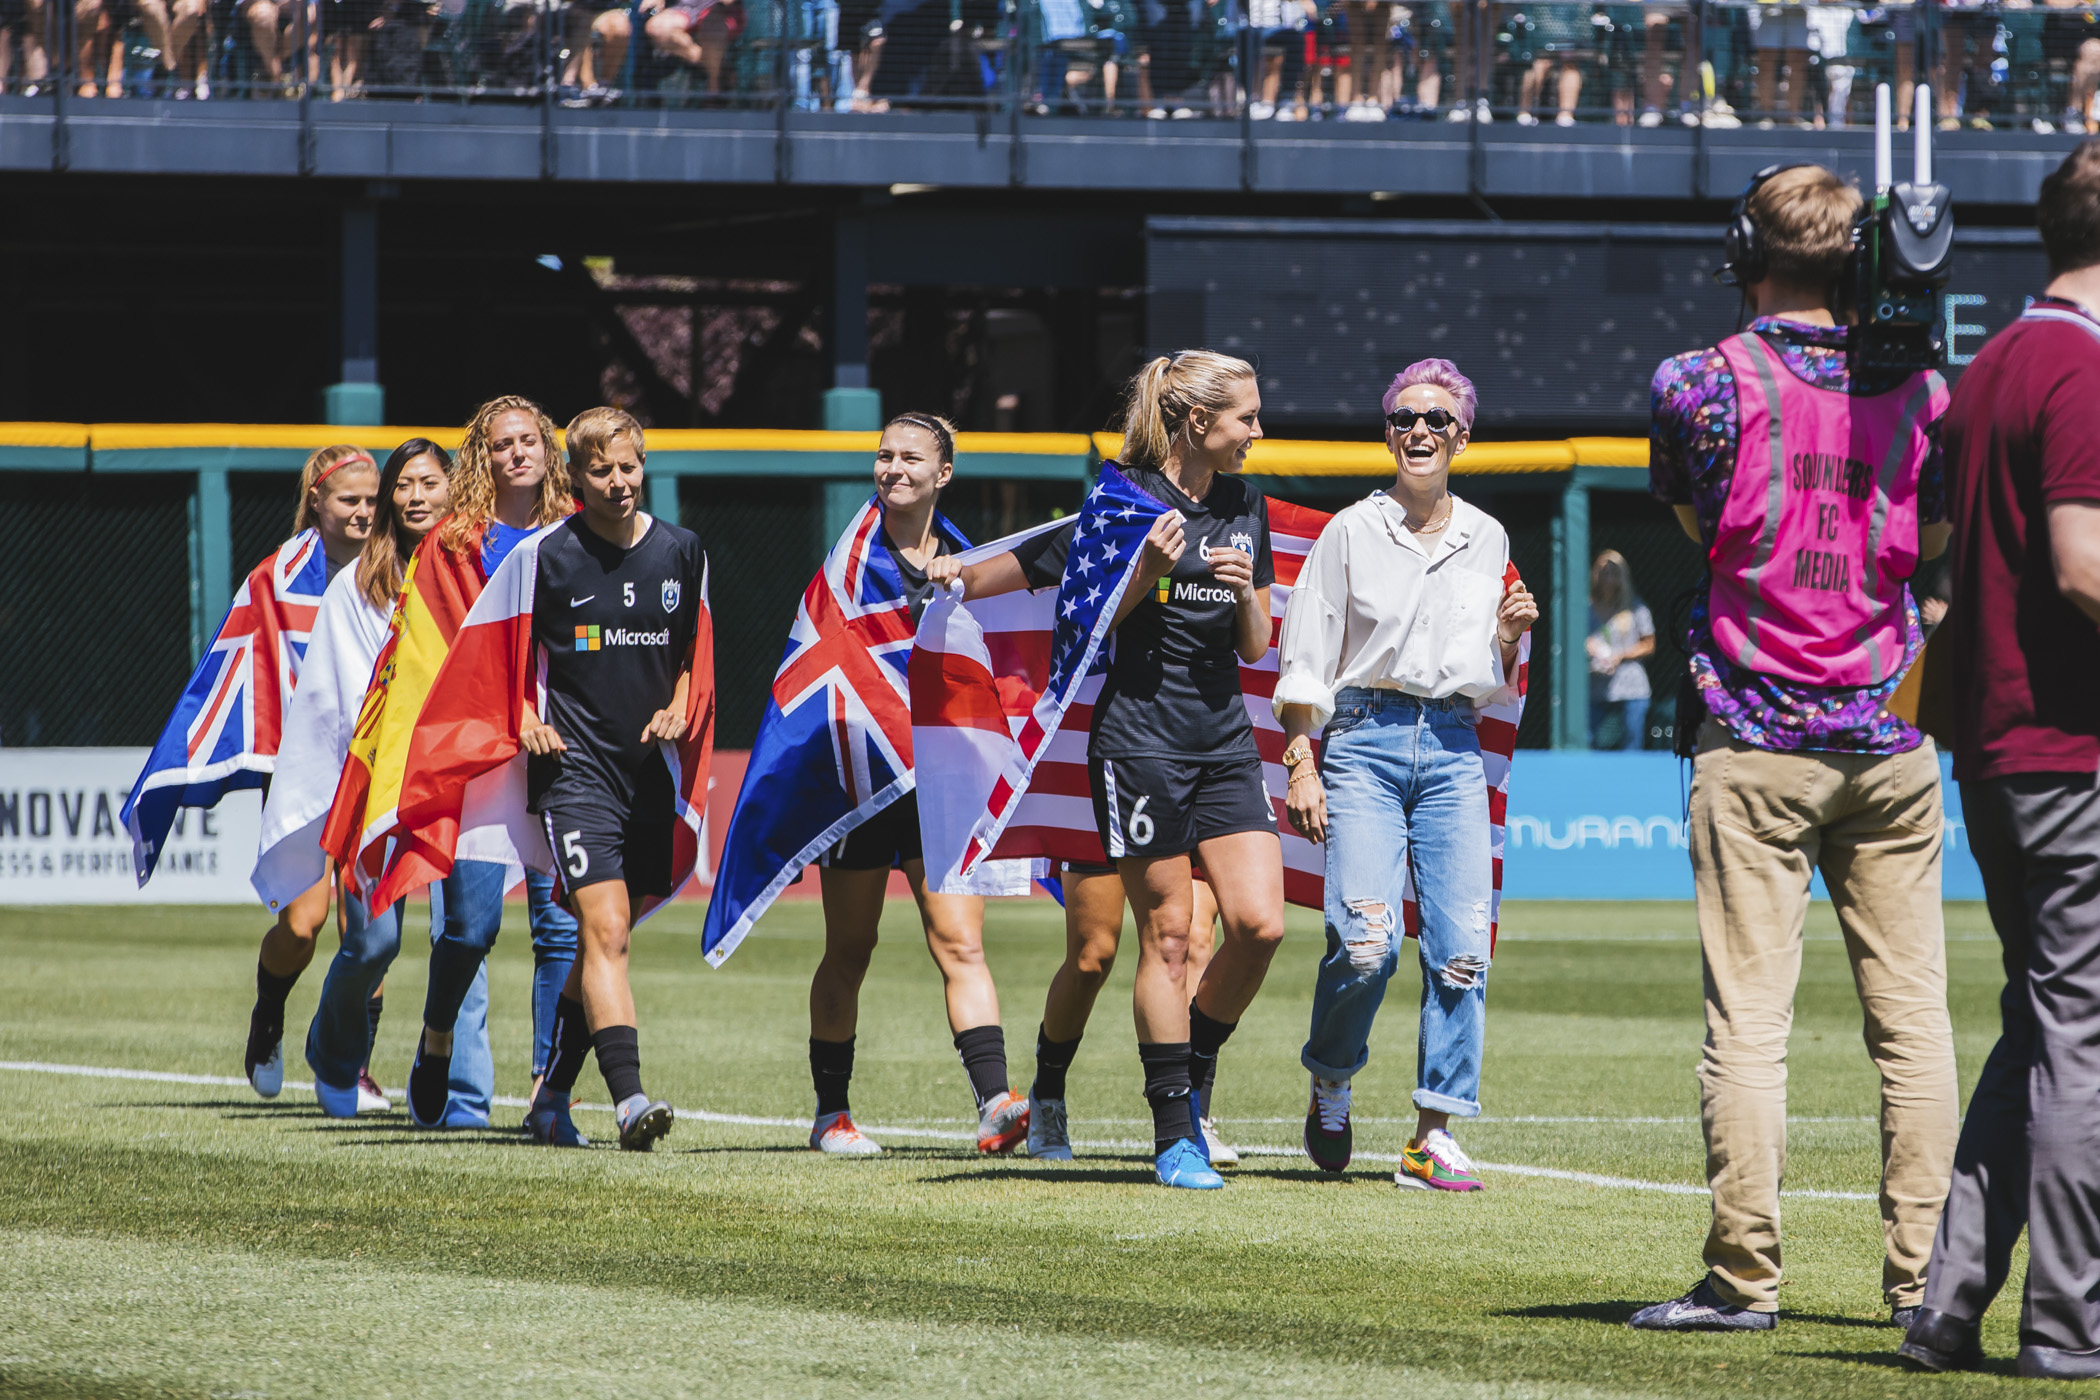 <p>World Cup champions Megan Rapinoe and Allie Long were welcomed back to their home team the Seattle Reign FC on Sunday, July 28 at their first match back after their phenomenal{&nbsp;} World Cup{&nbsp;} win. While neither played this game, proud fans filled a sold-out Cheney Stadium in Tacoma, where 7,000+ watched as the Reign took on the Chicago Red Stars. (Image: Sunita Martini / Seattle Refined)</p>